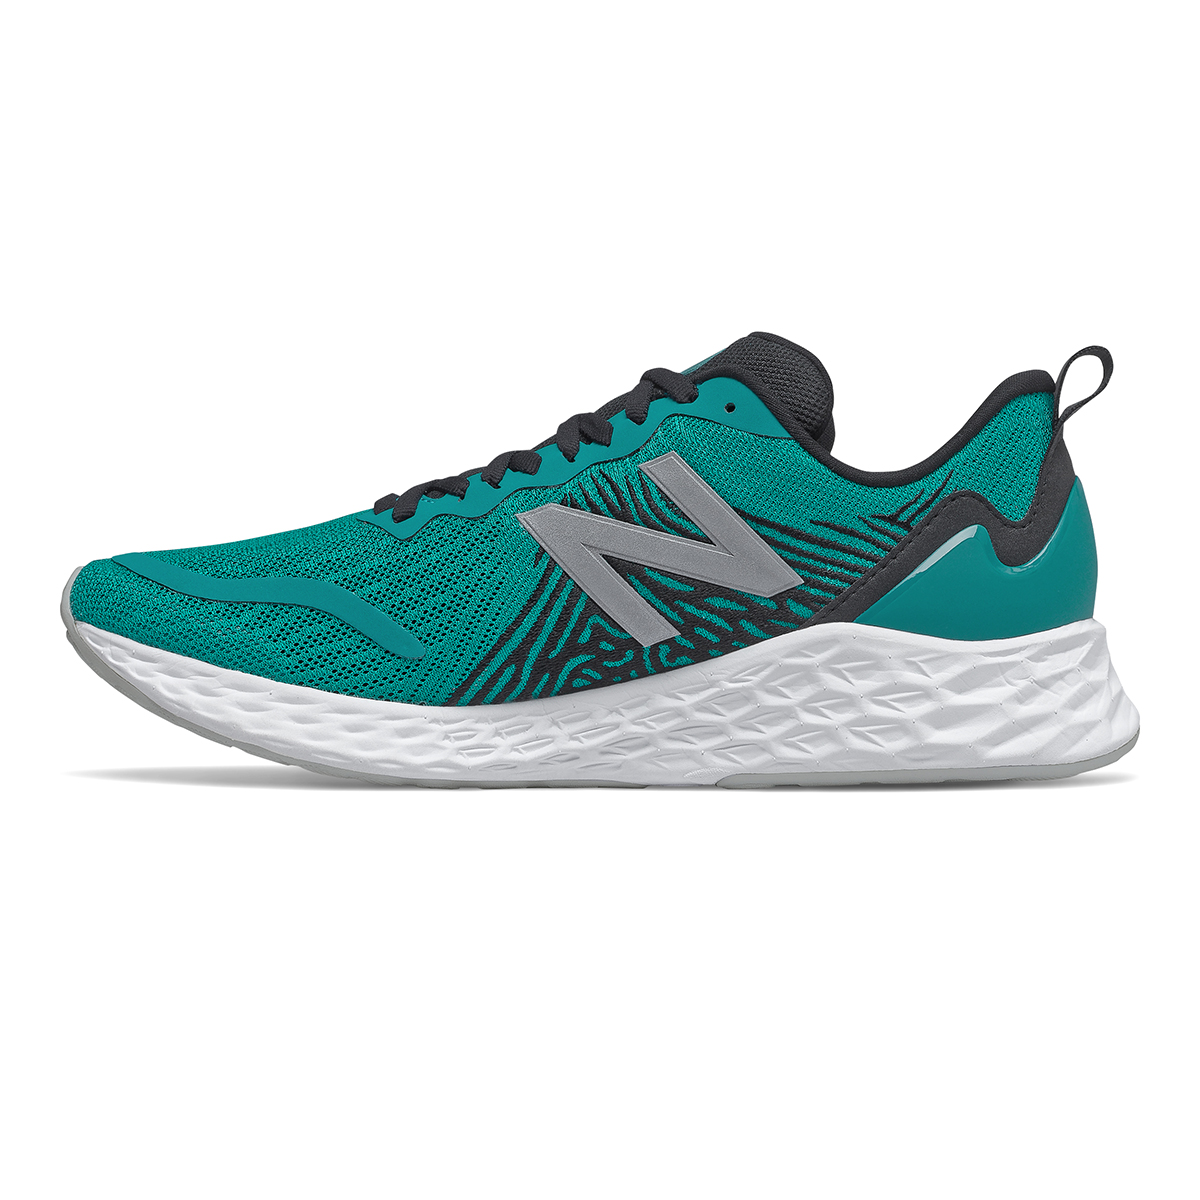 Men's New Balance Tempo Running Shoe - Color: Team Teal - Size: 7.5 - Width: Wide, Team Teal, large, image 2